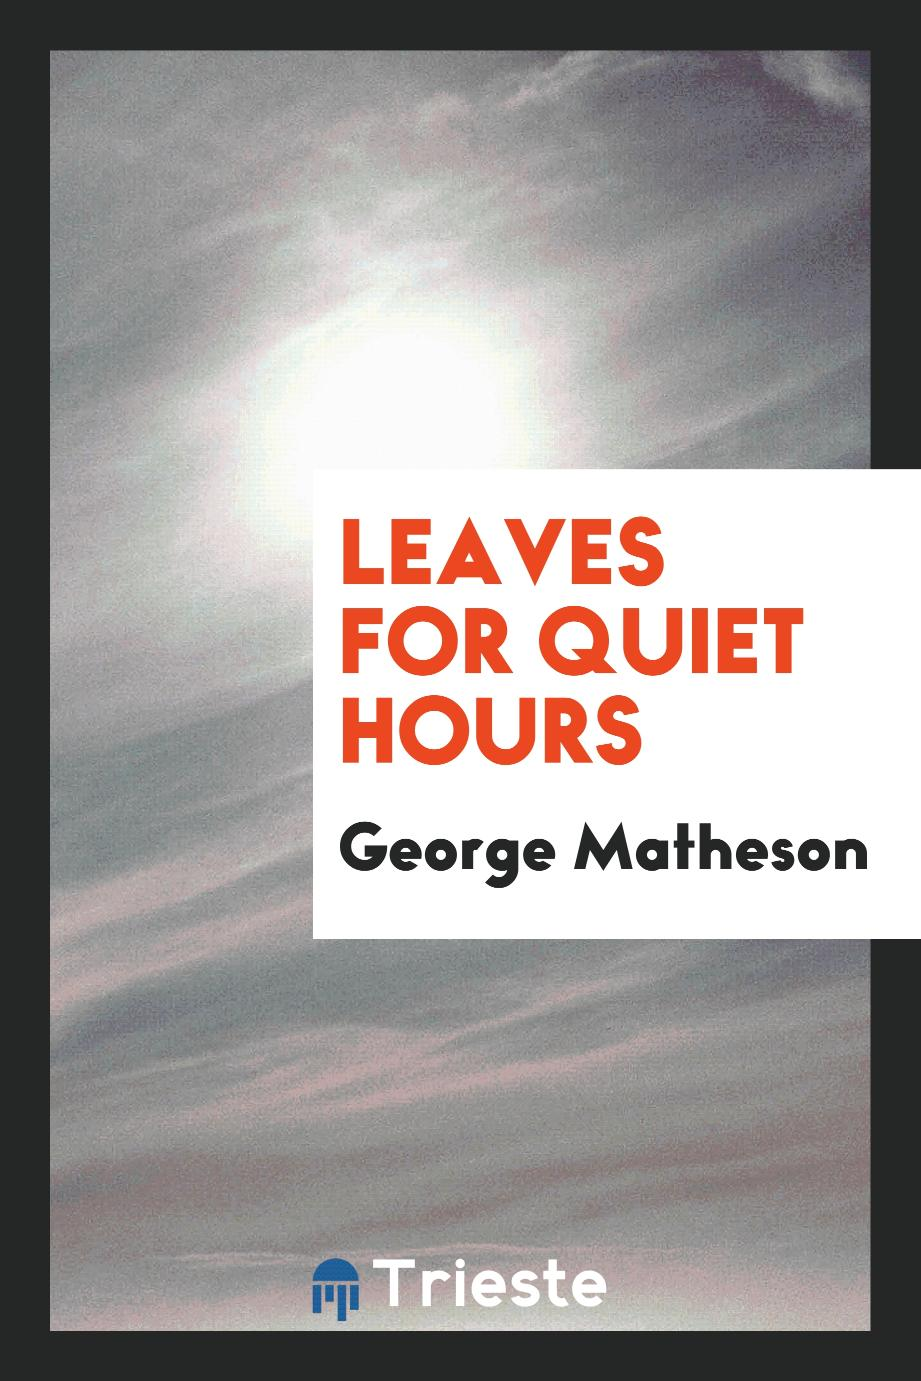 Leaves for quiet hours